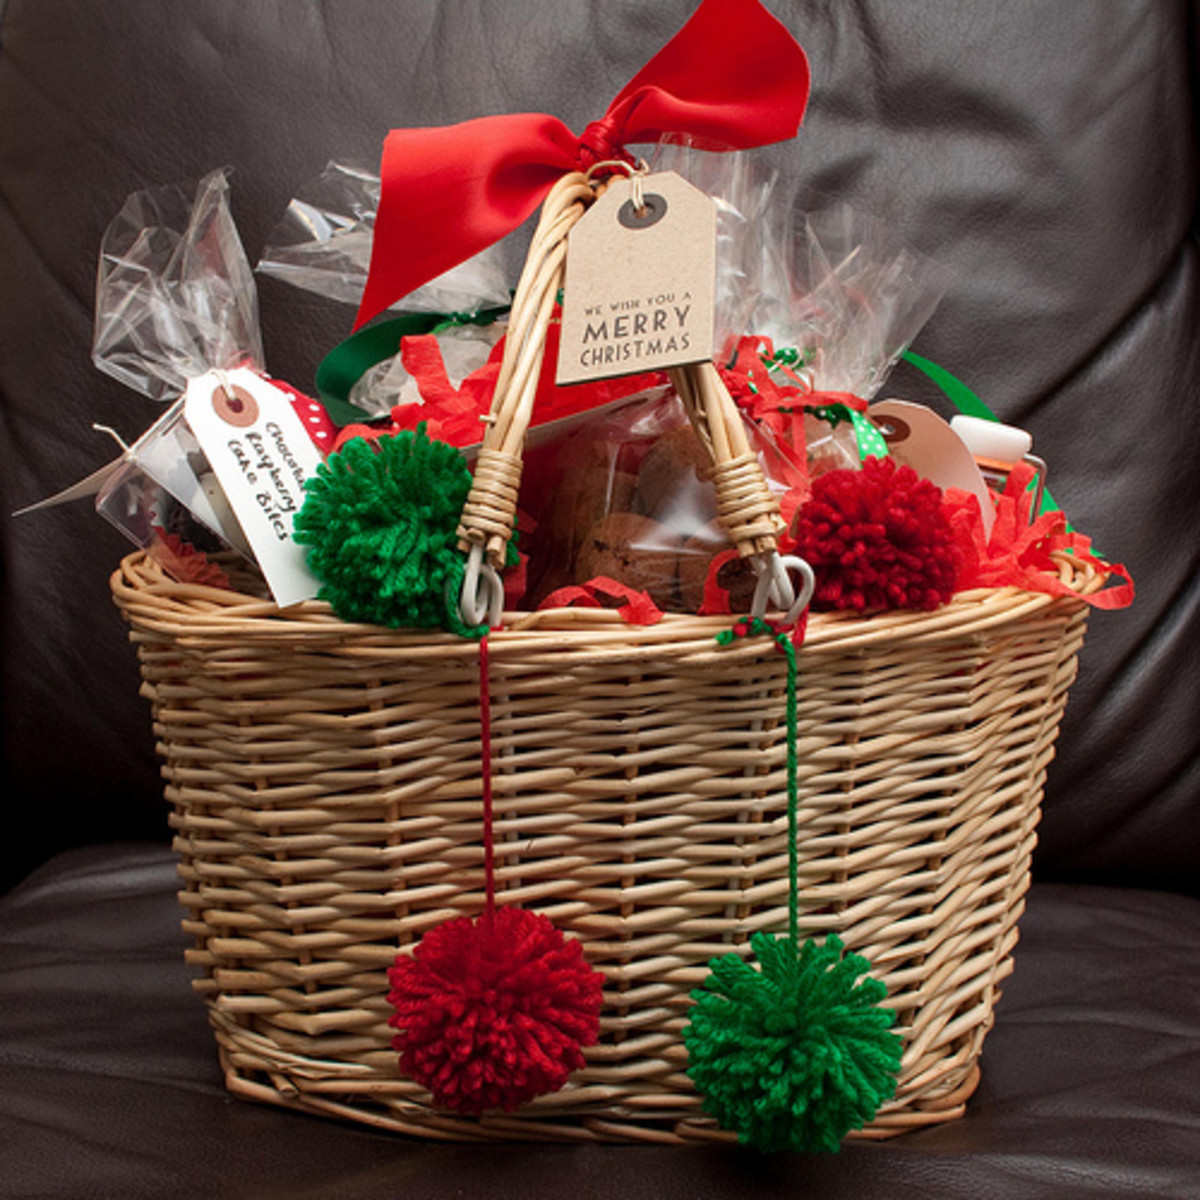 easy-ways-to-save-money-on-christmas-presents